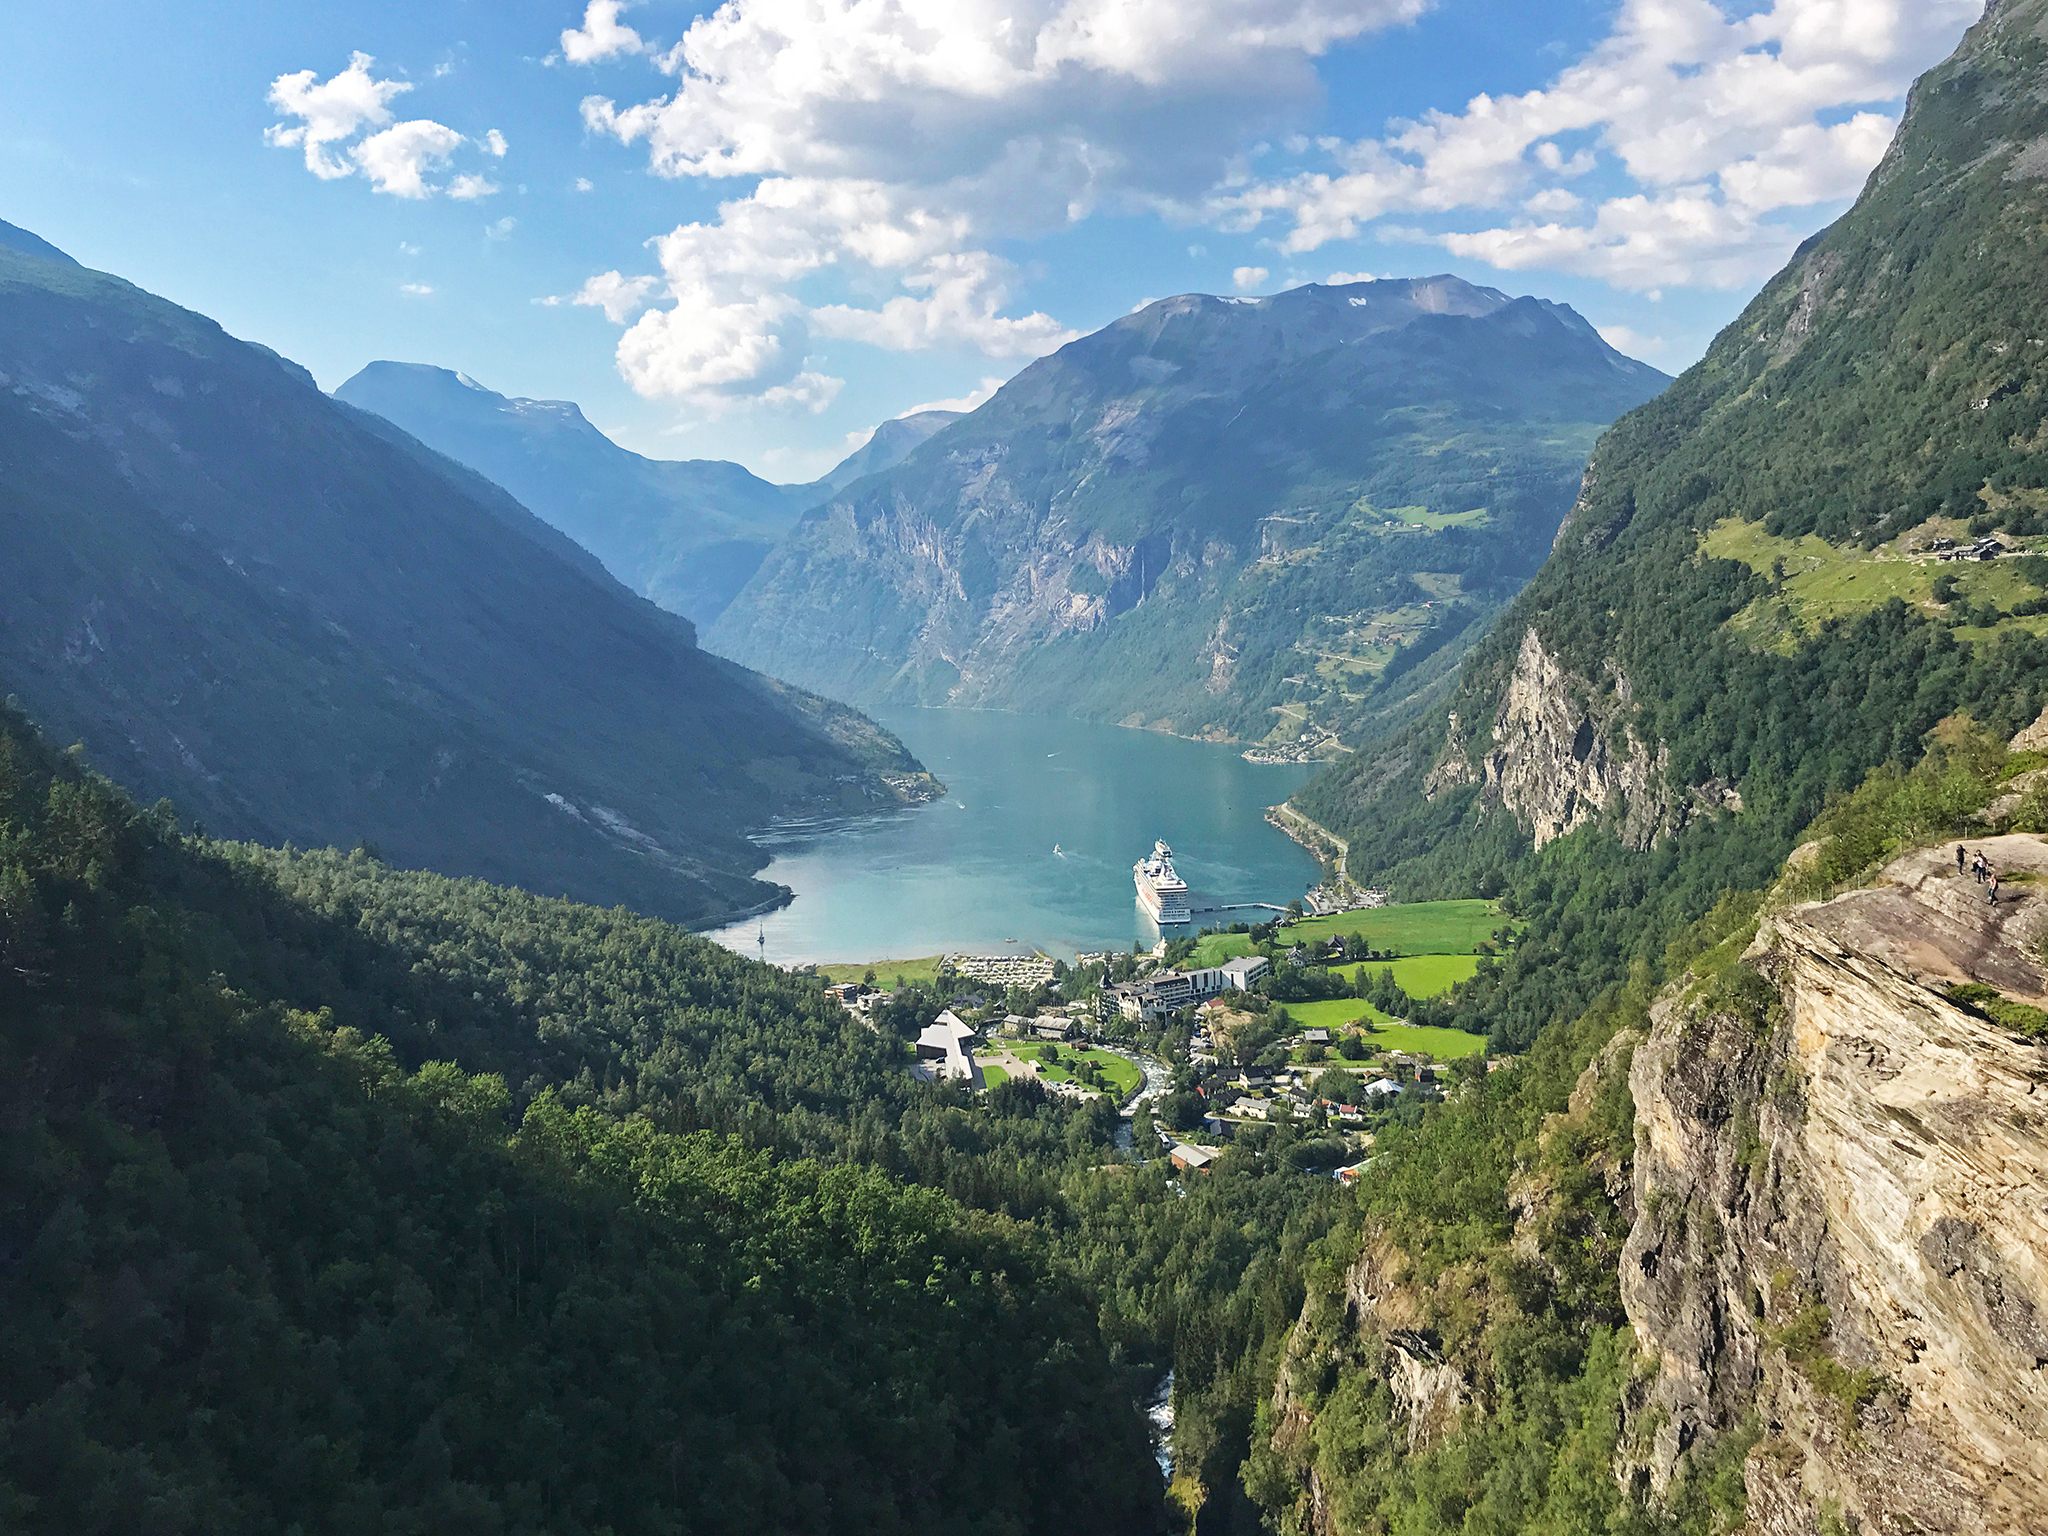 Geiranger and Geirangerfjord, Norway late July 2019